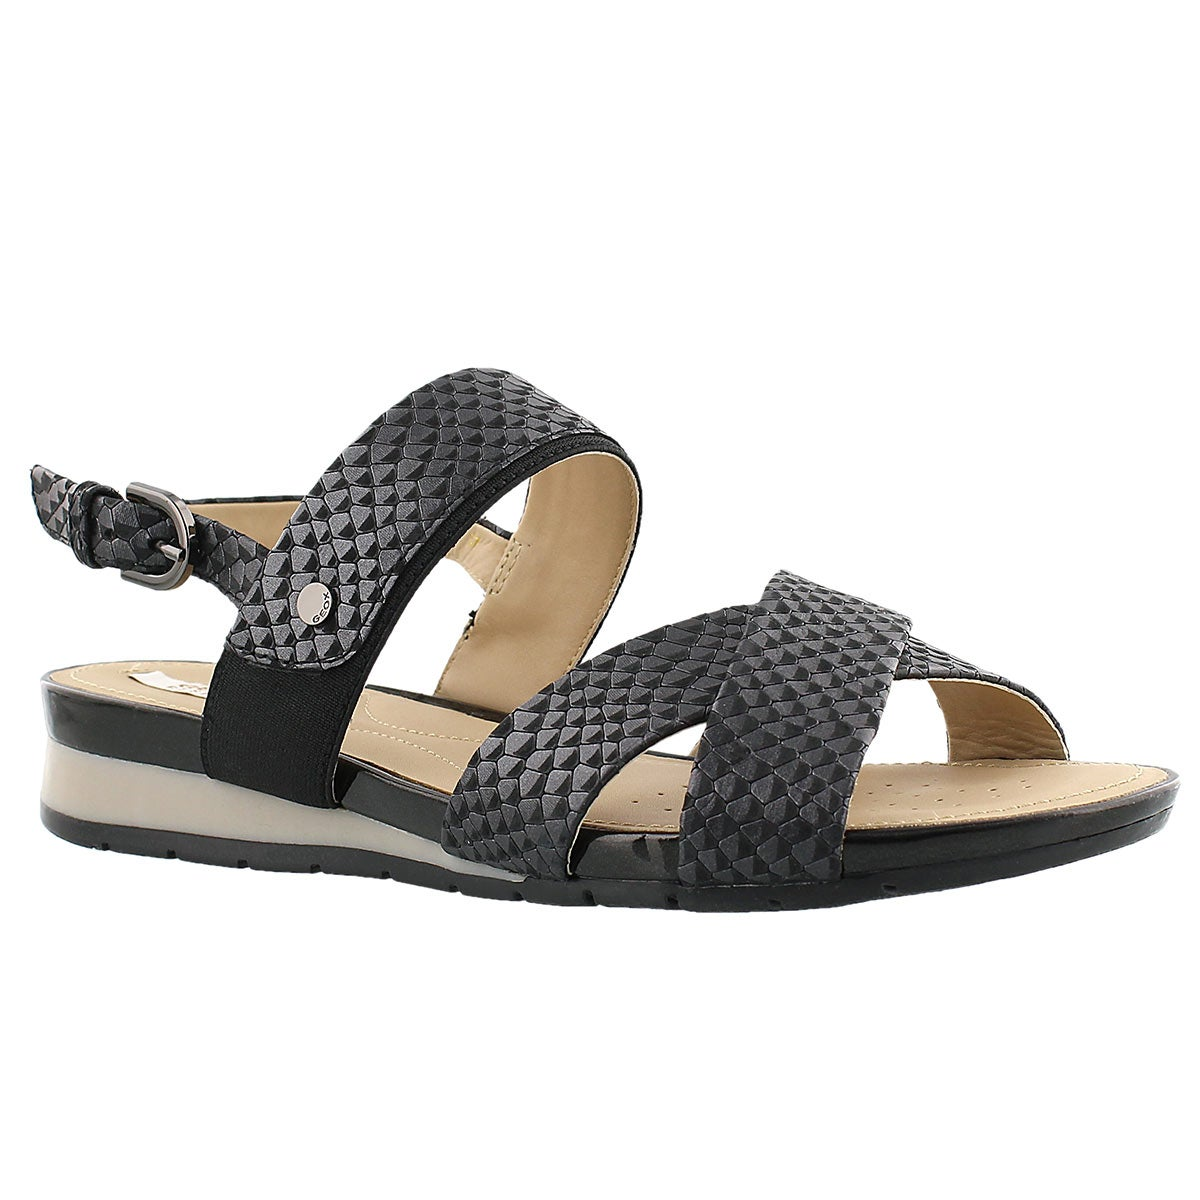 Lds Formosa black dress sandal